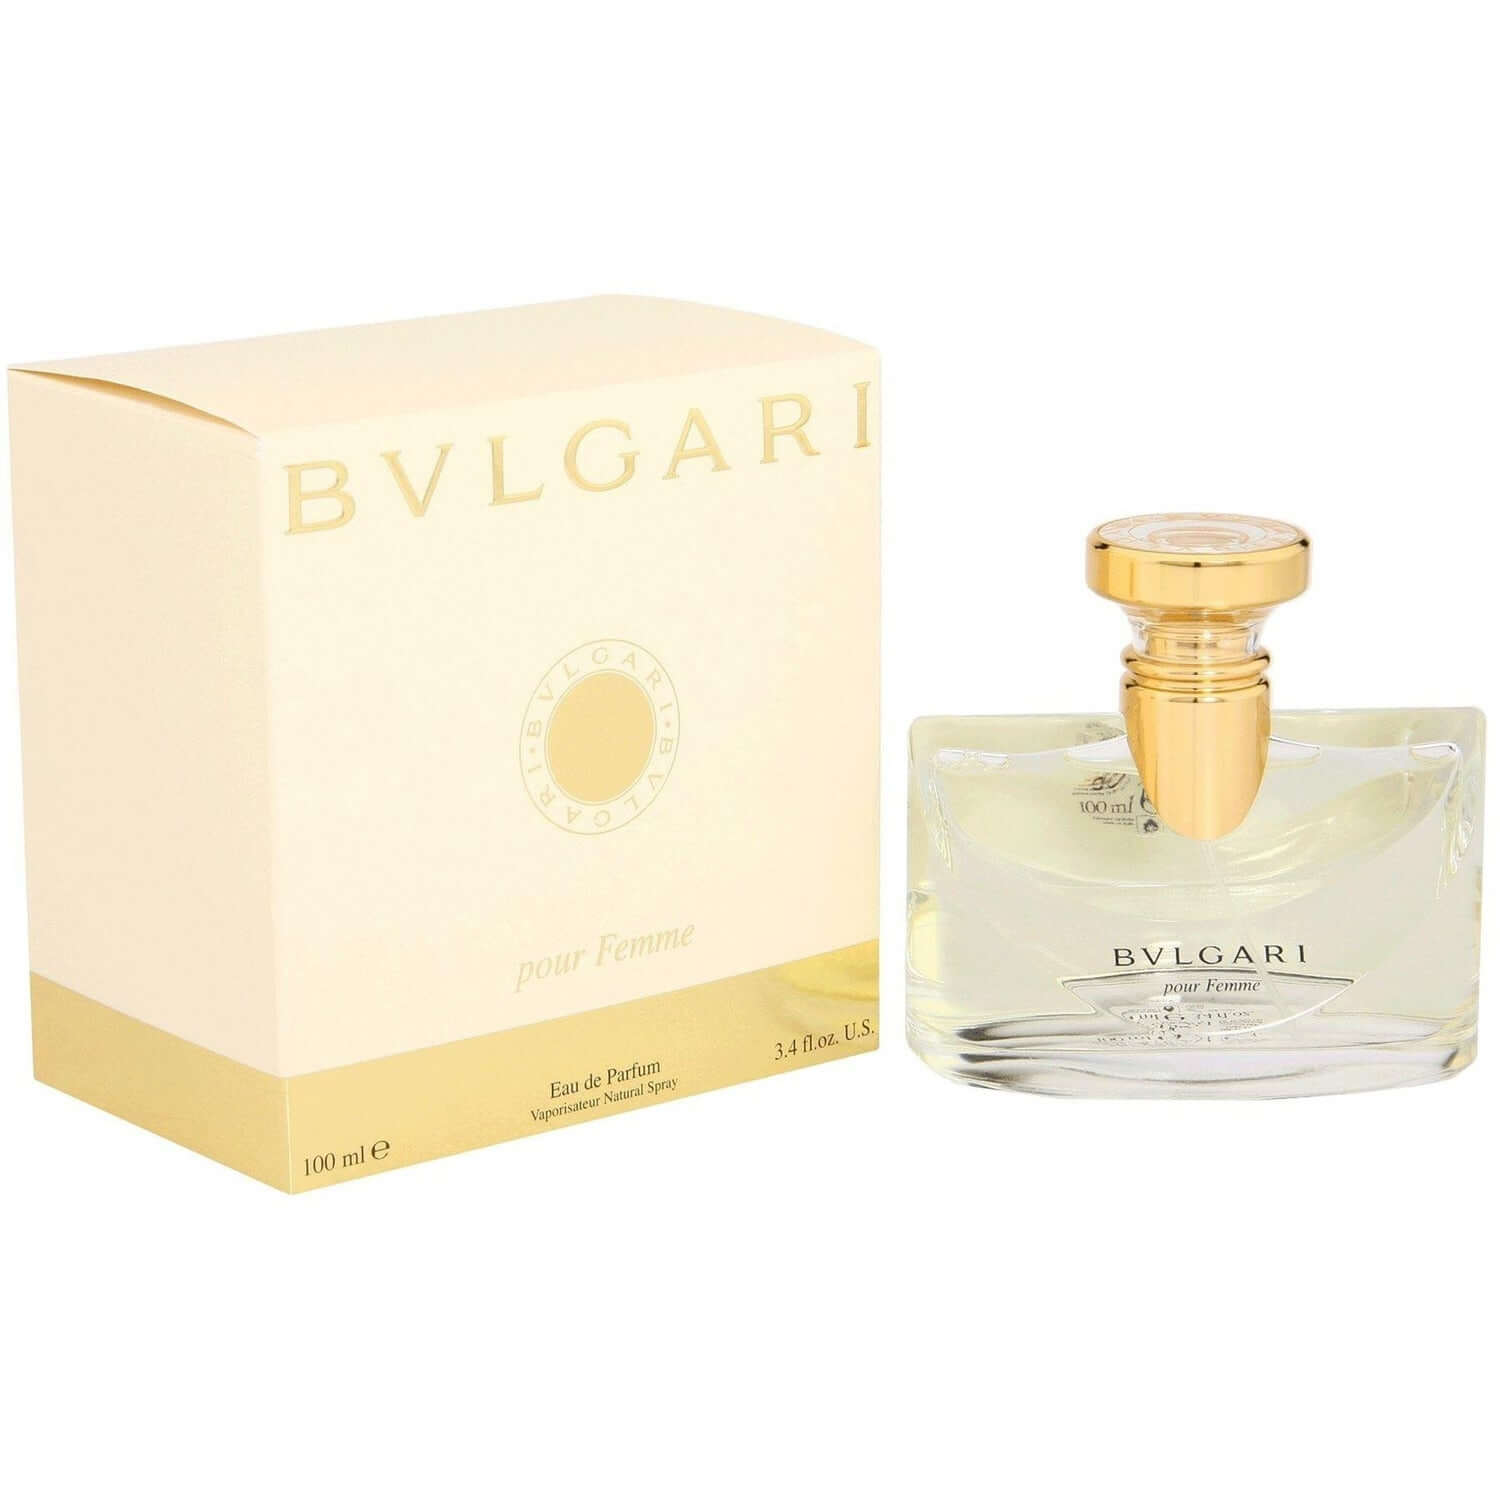 bvlgari-pour-femme-perfume-edt-women-3-4-oz-3-3-new-in-box